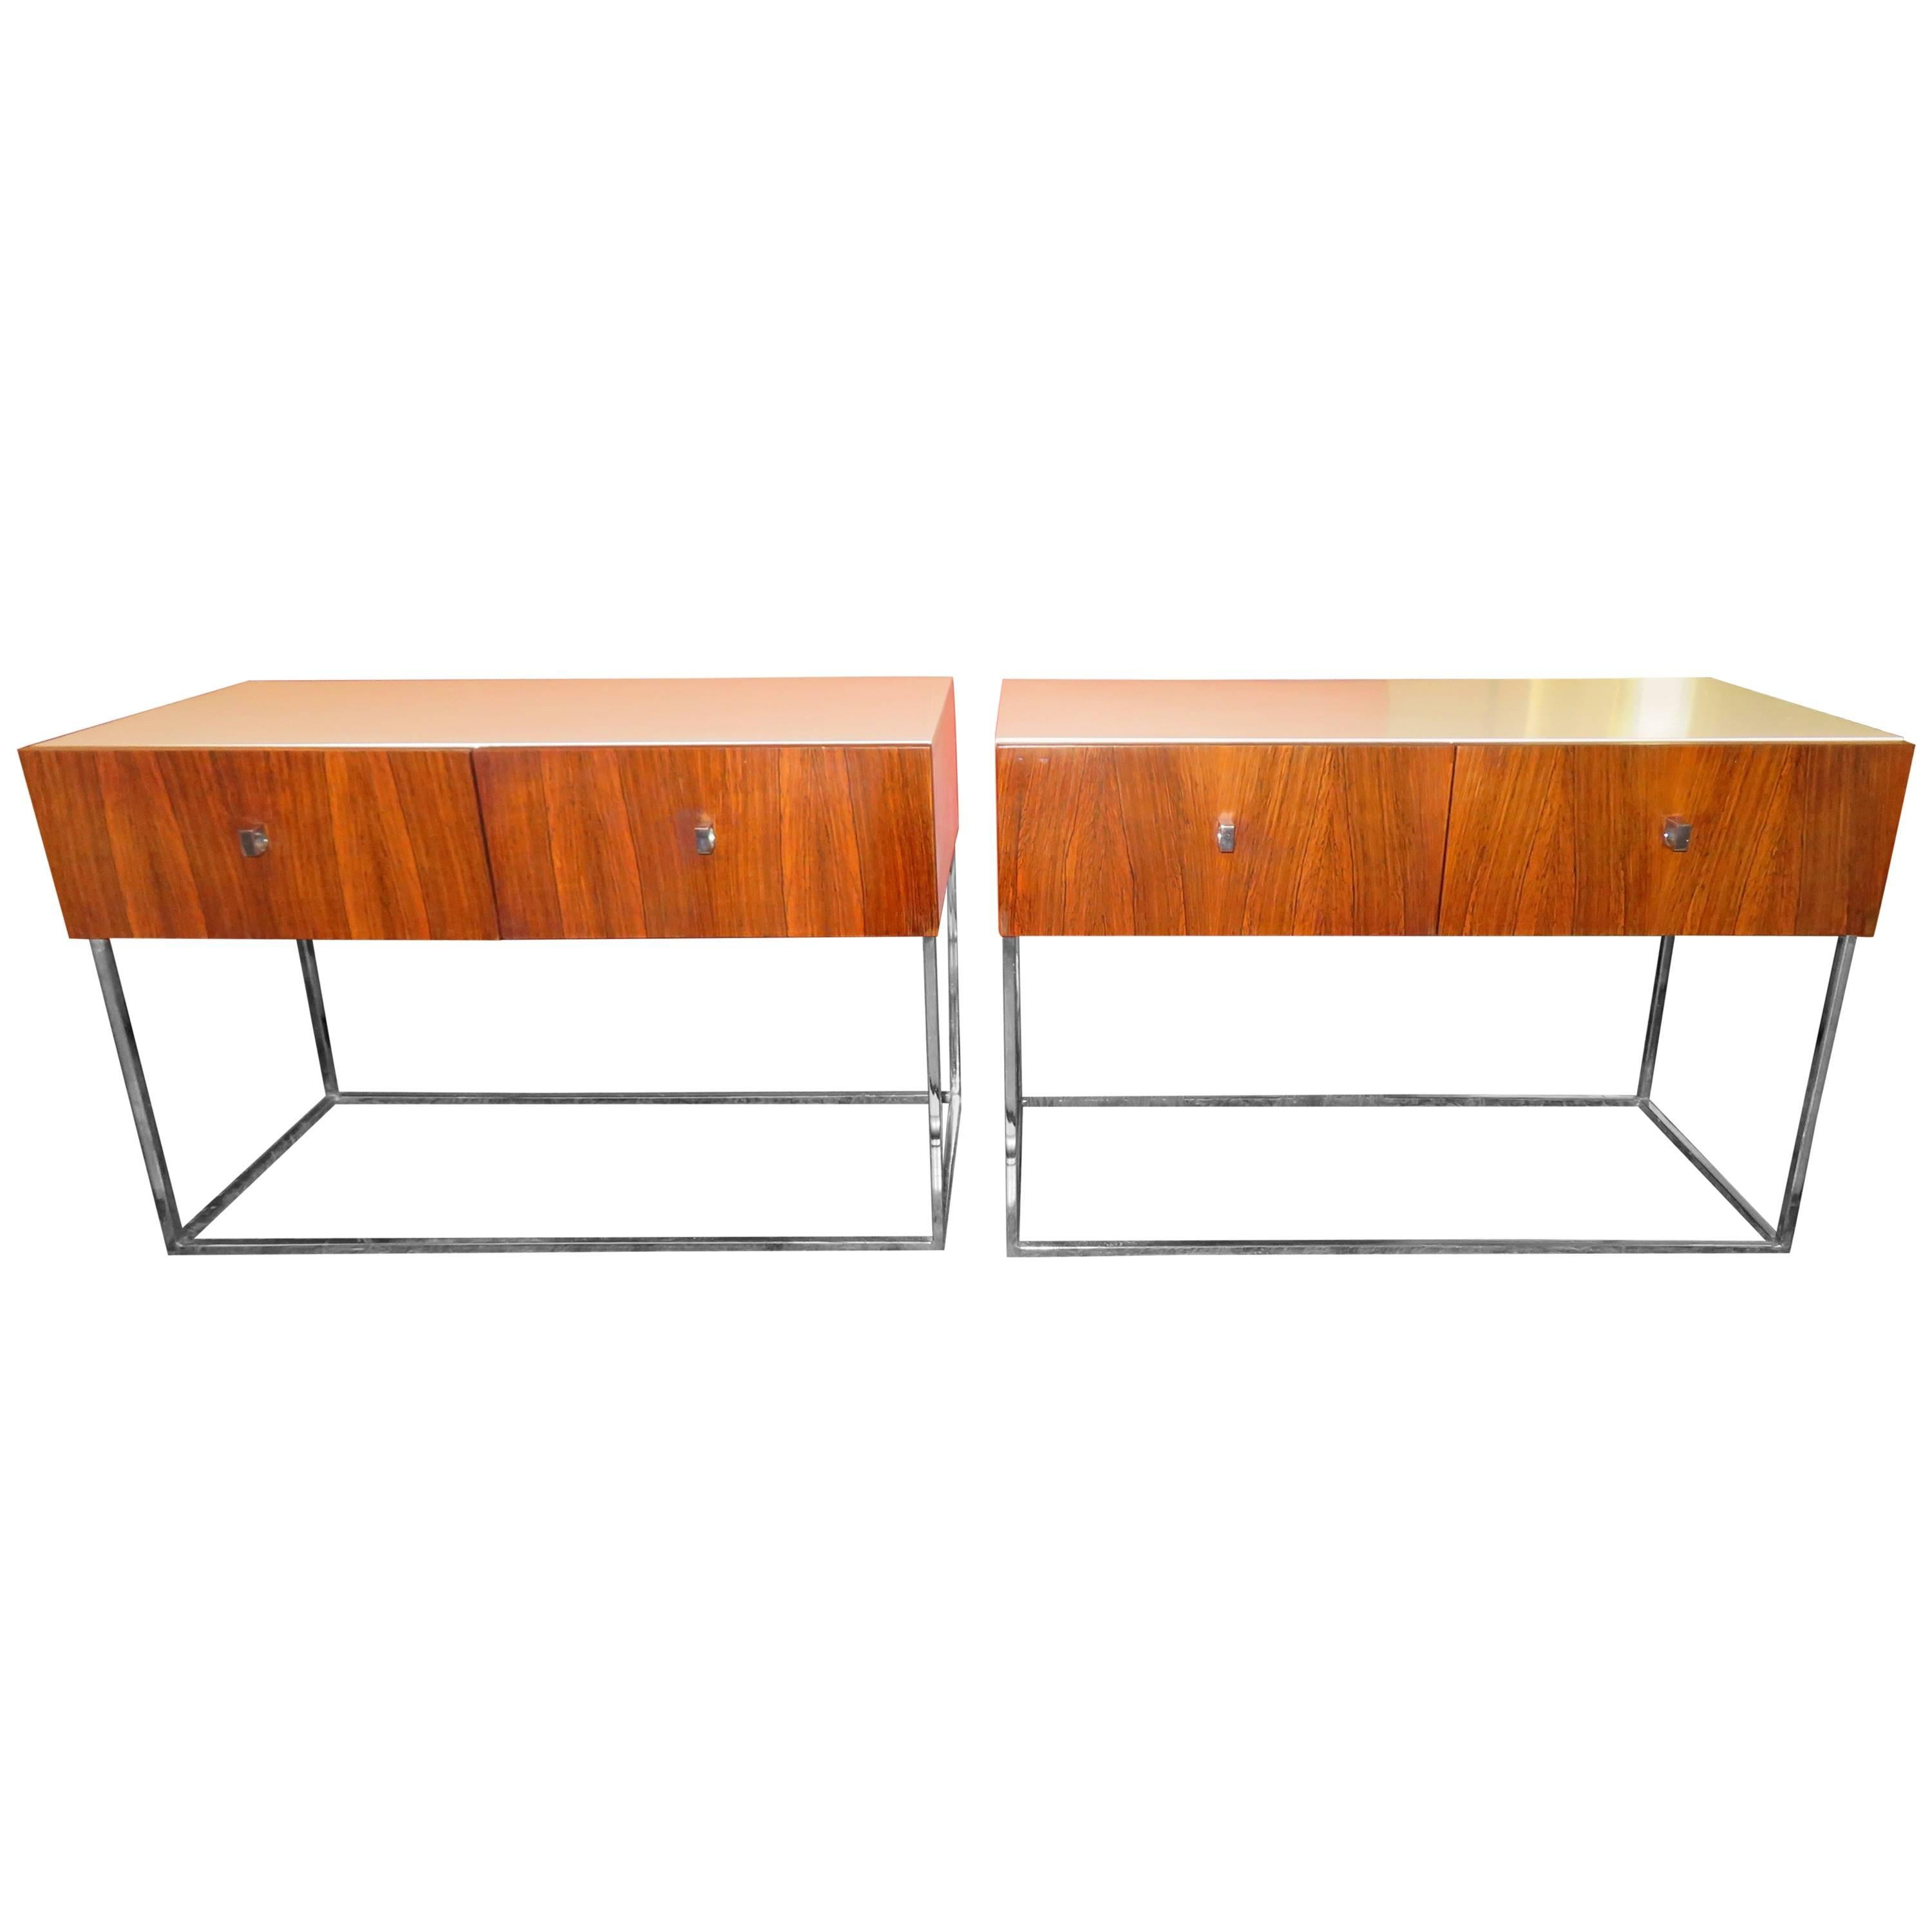 Pair of Rougier Rosewood Two-Drawer Chrome Base Nightstands Mid-Century Modern